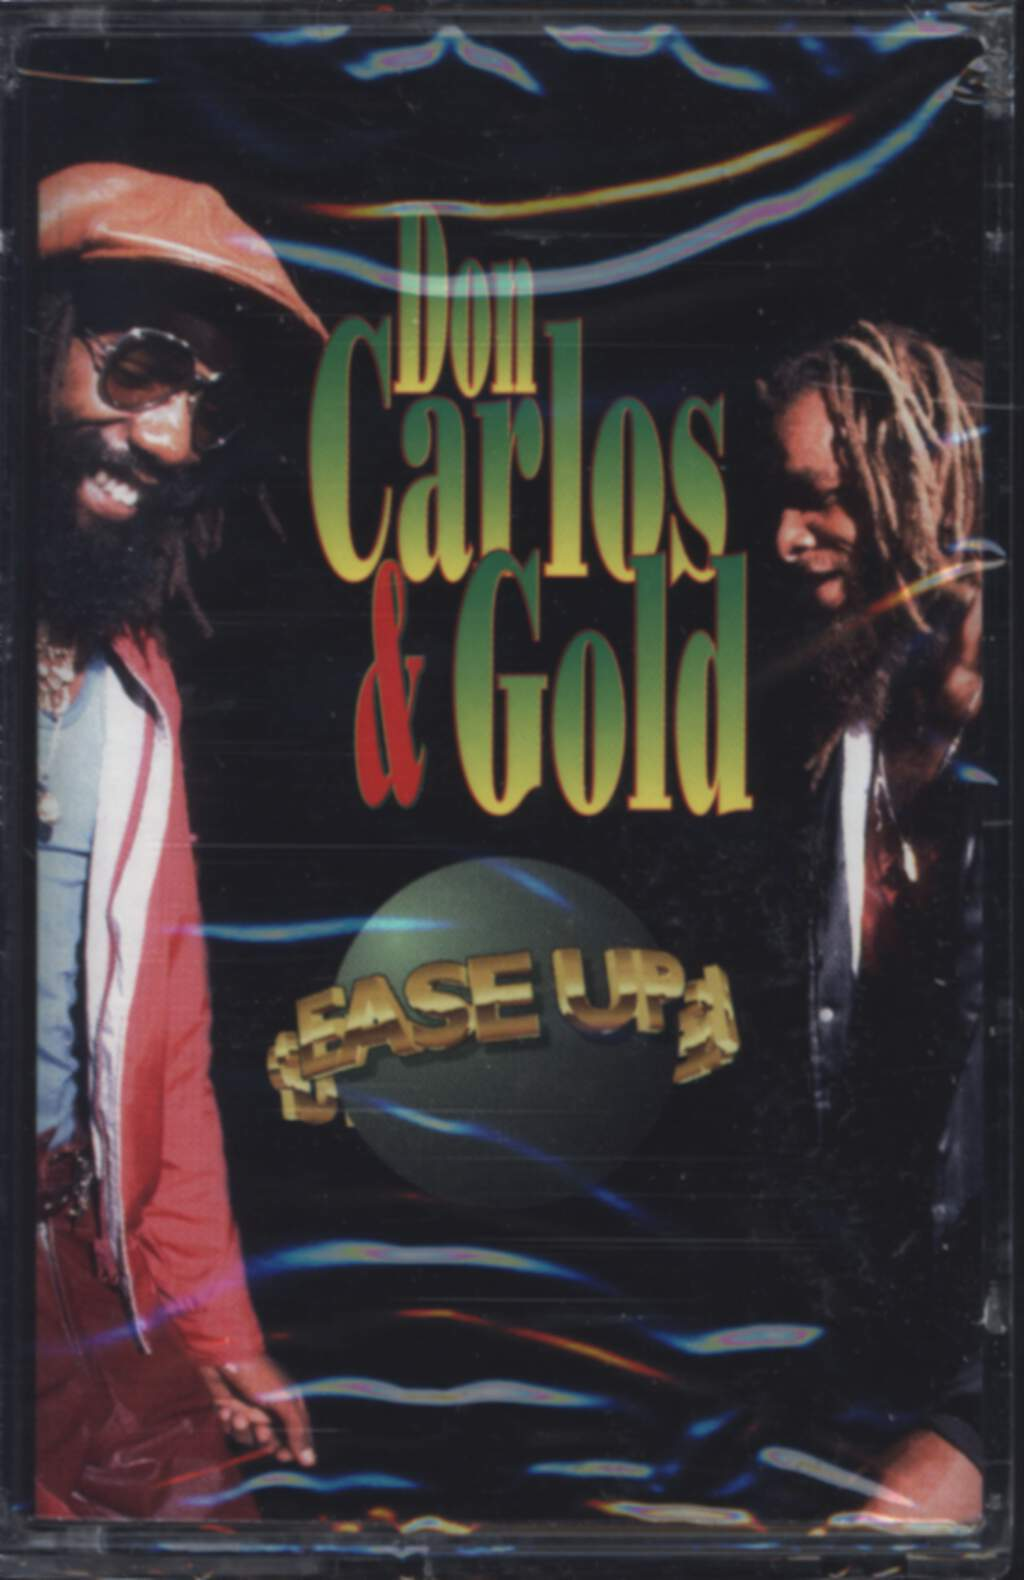 Don Carlos: Ease Up, Compact Cassette